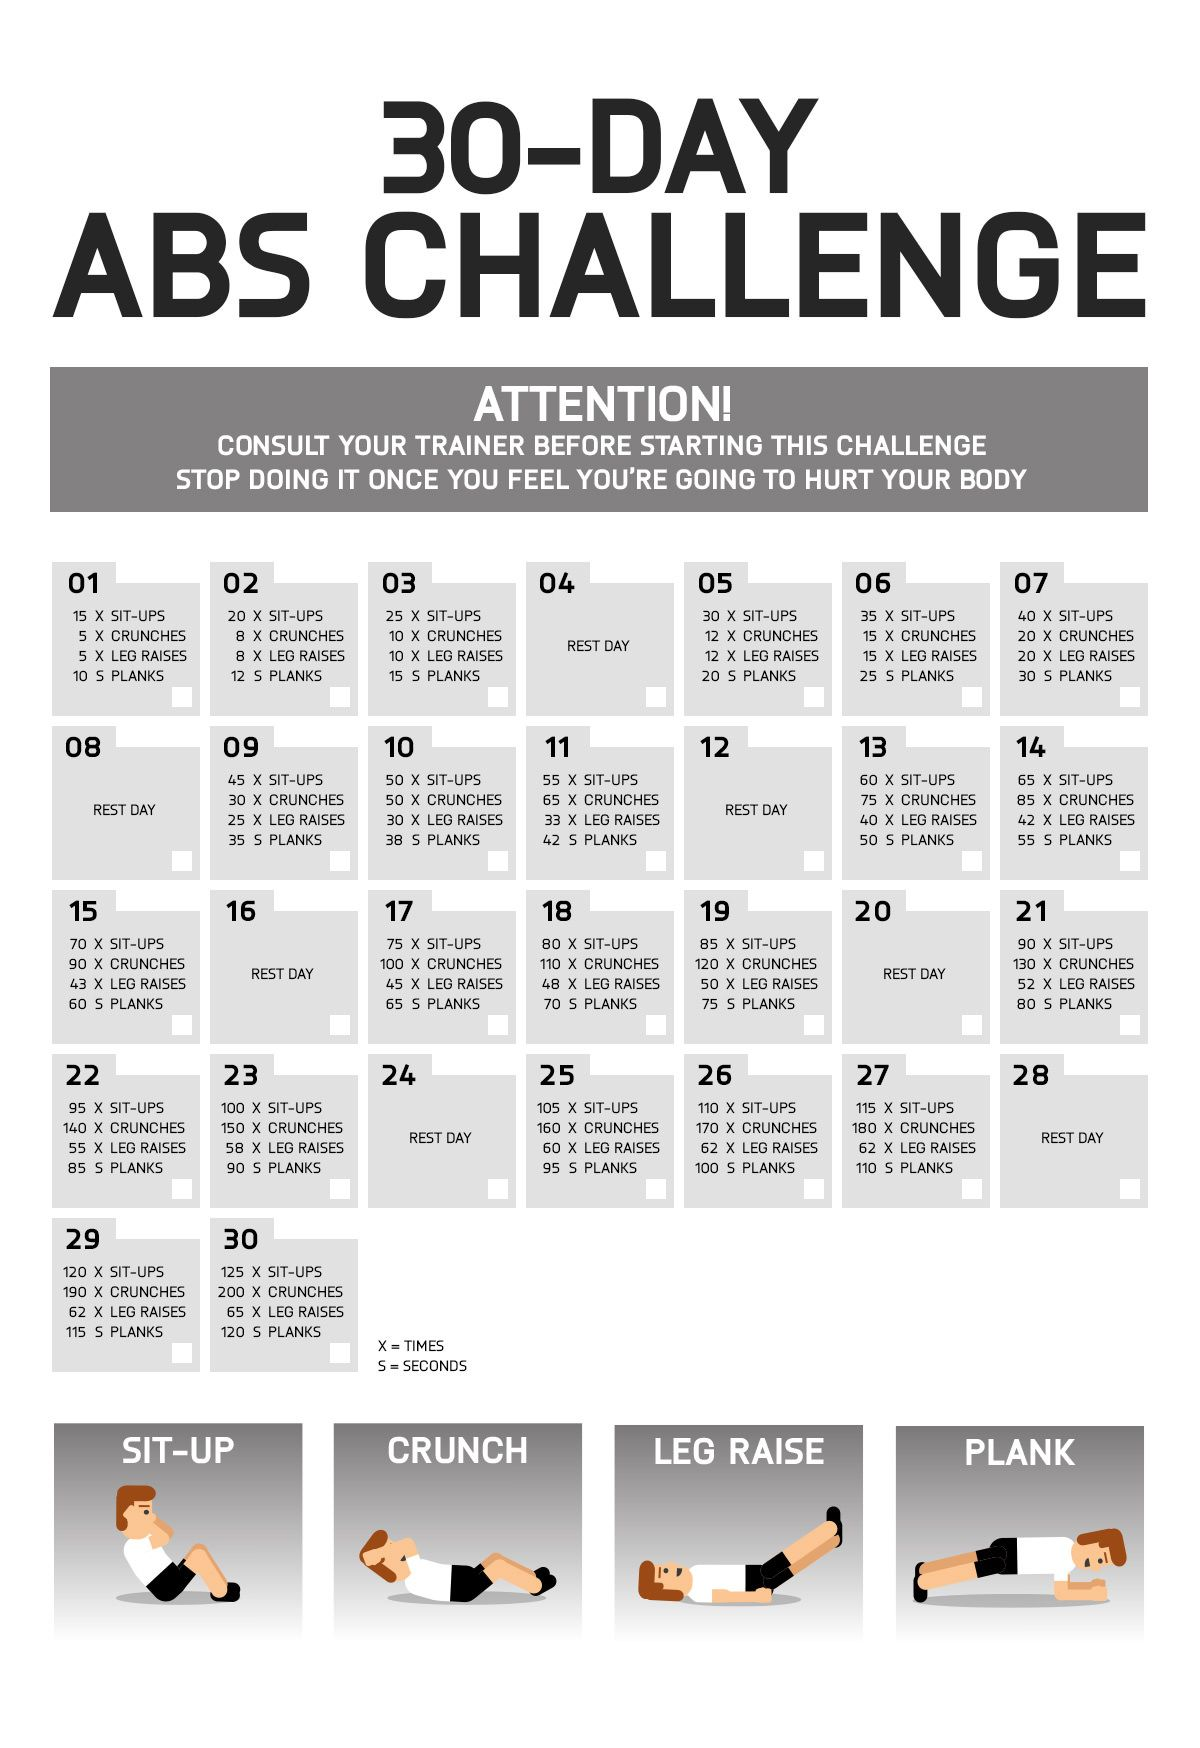 a 30 day abs